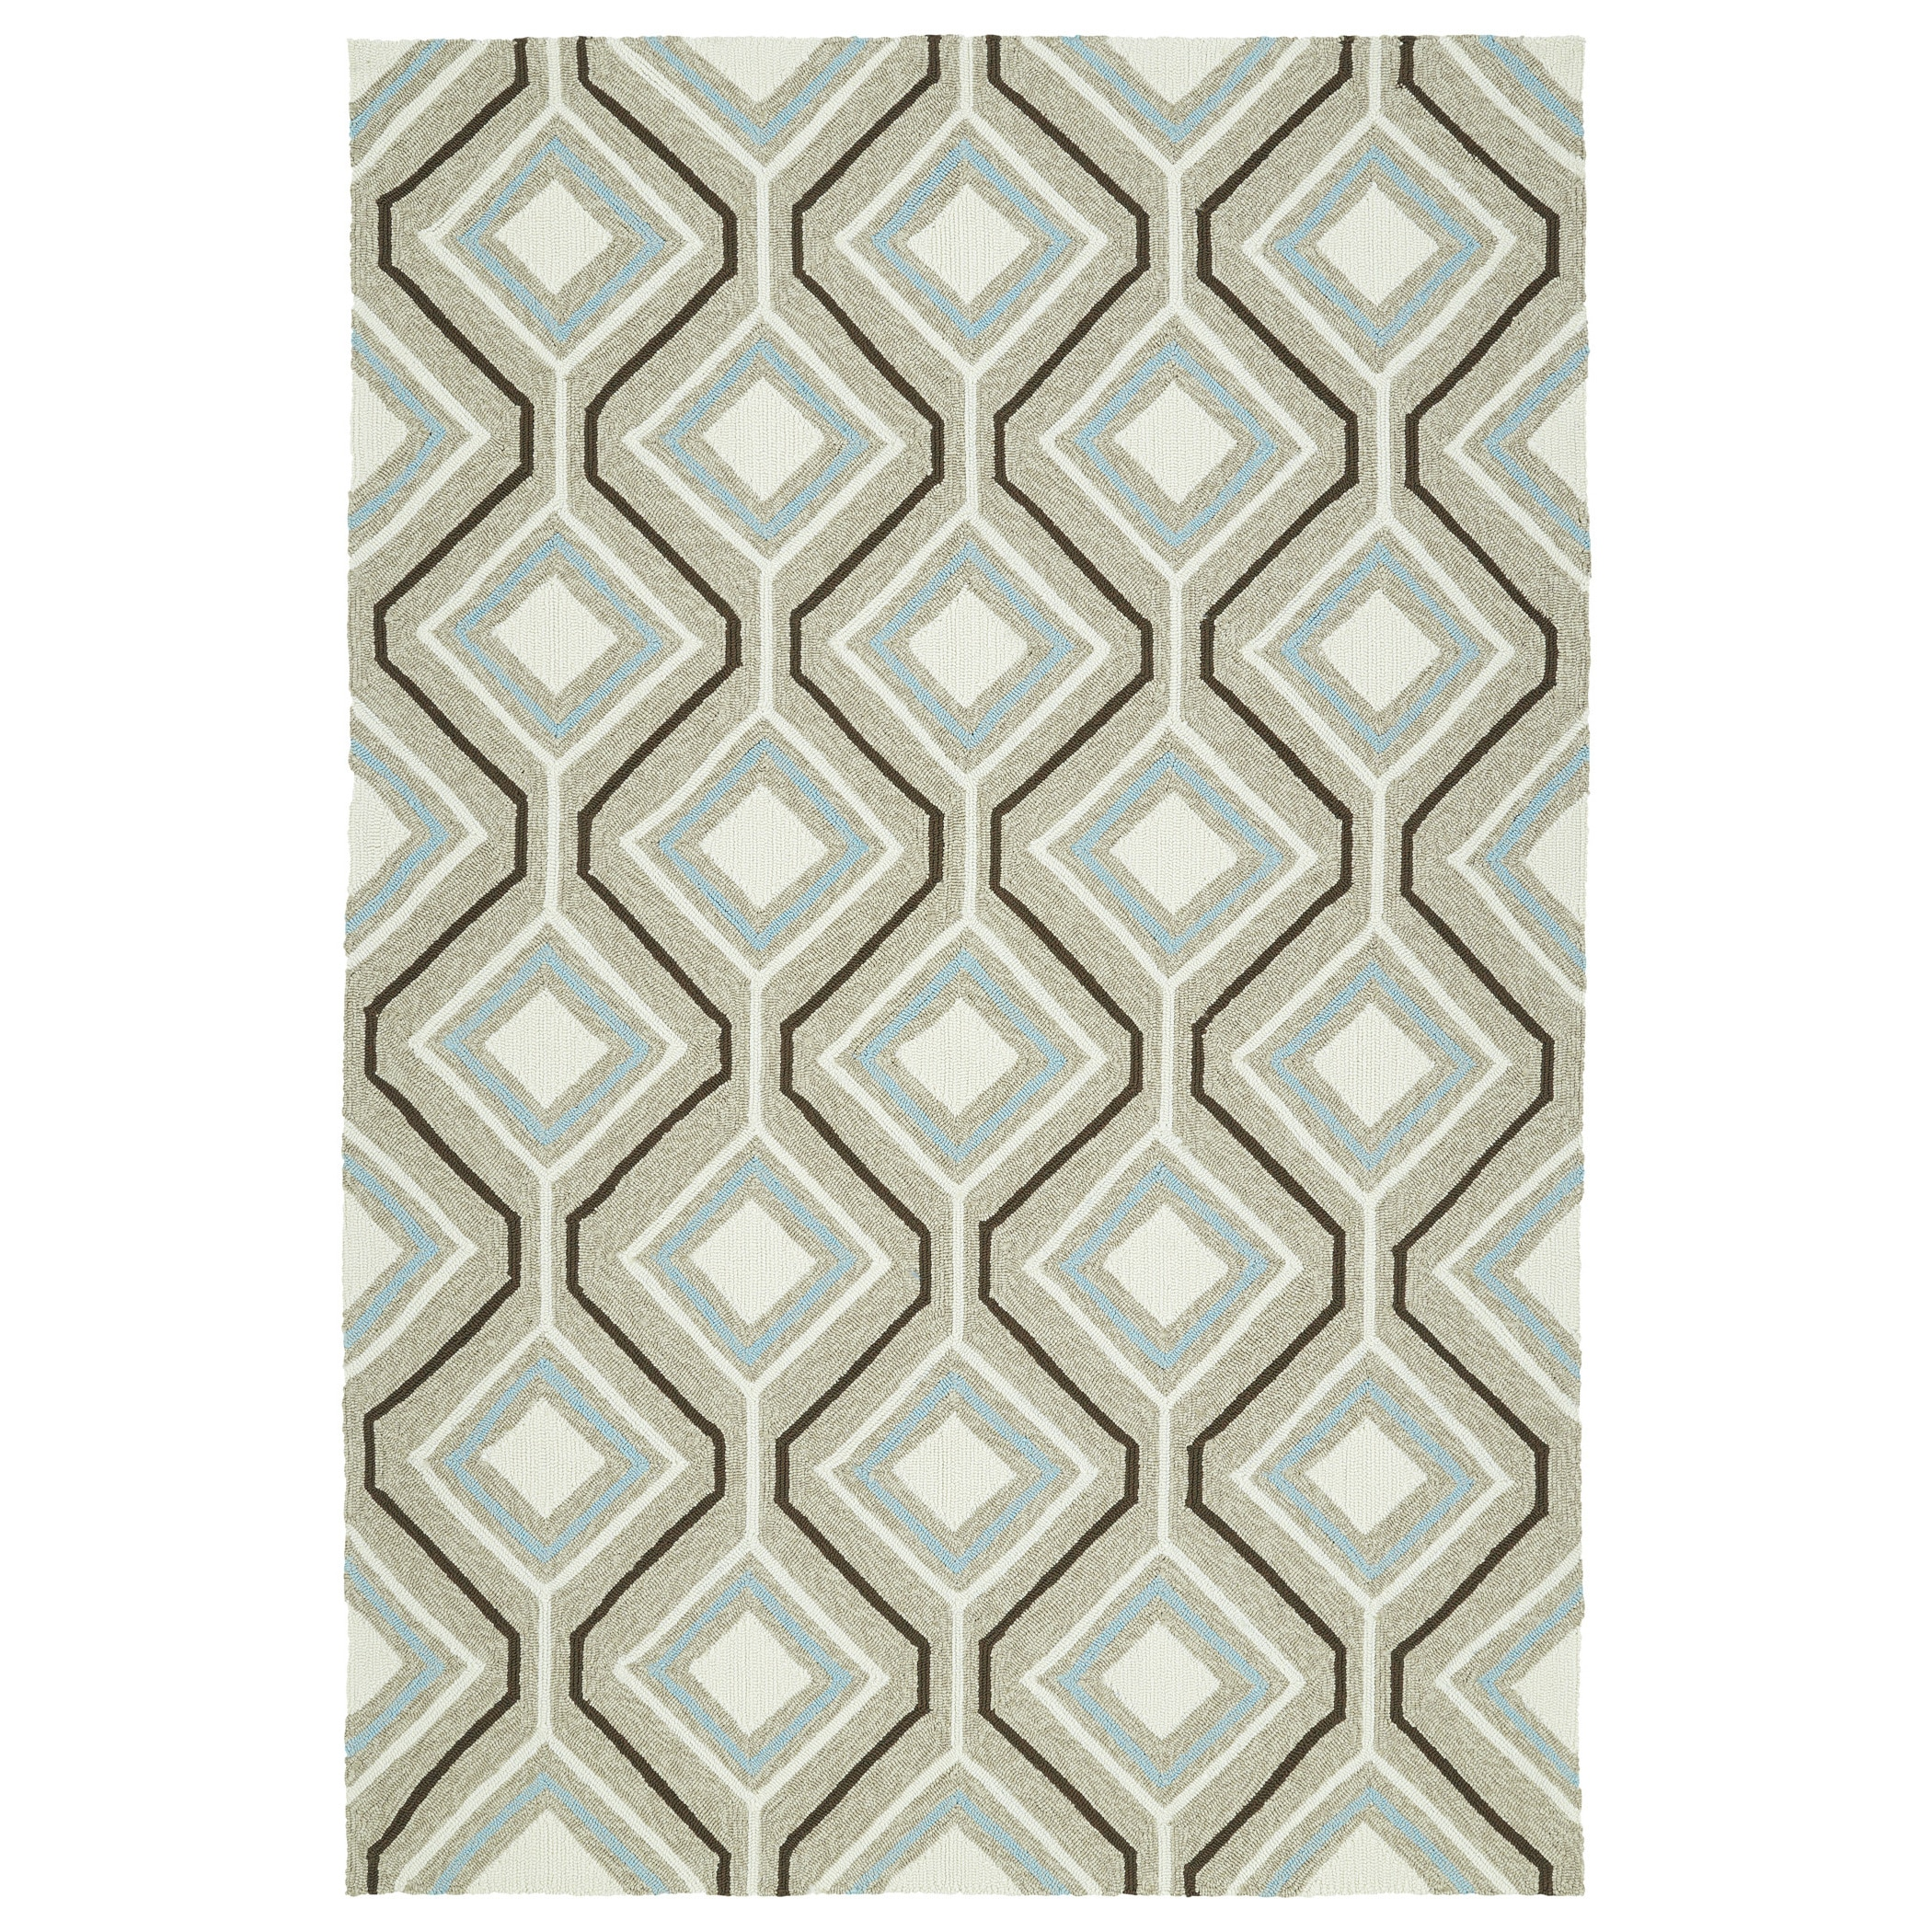 Kaleen Rugs Escape Indoor/Outdoor Rug, Light Brown, 2' x 3'